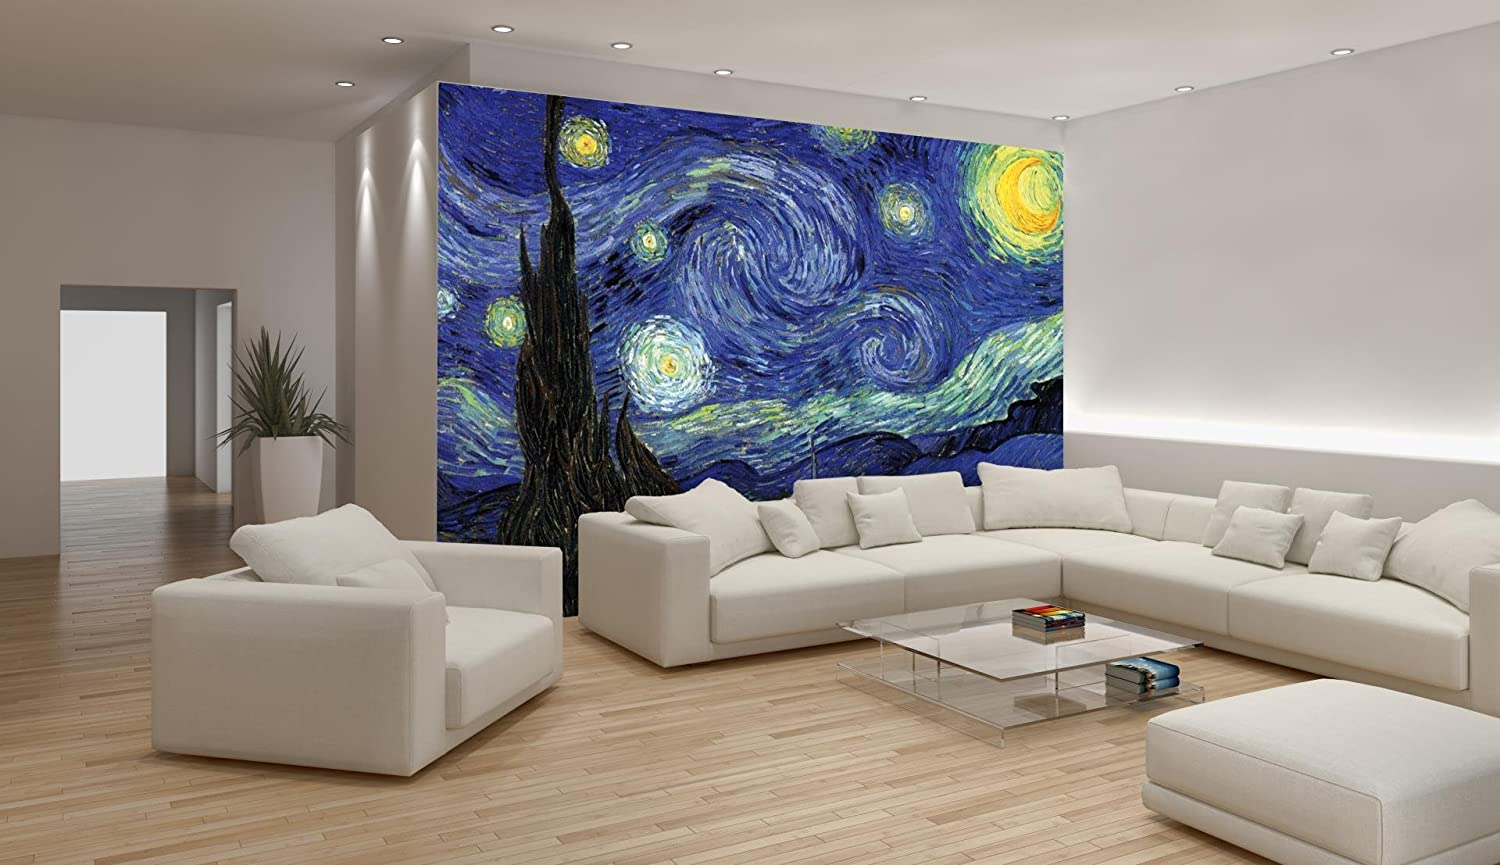 Van Gogh Starry Night Wallpaper Mural Amazon Com